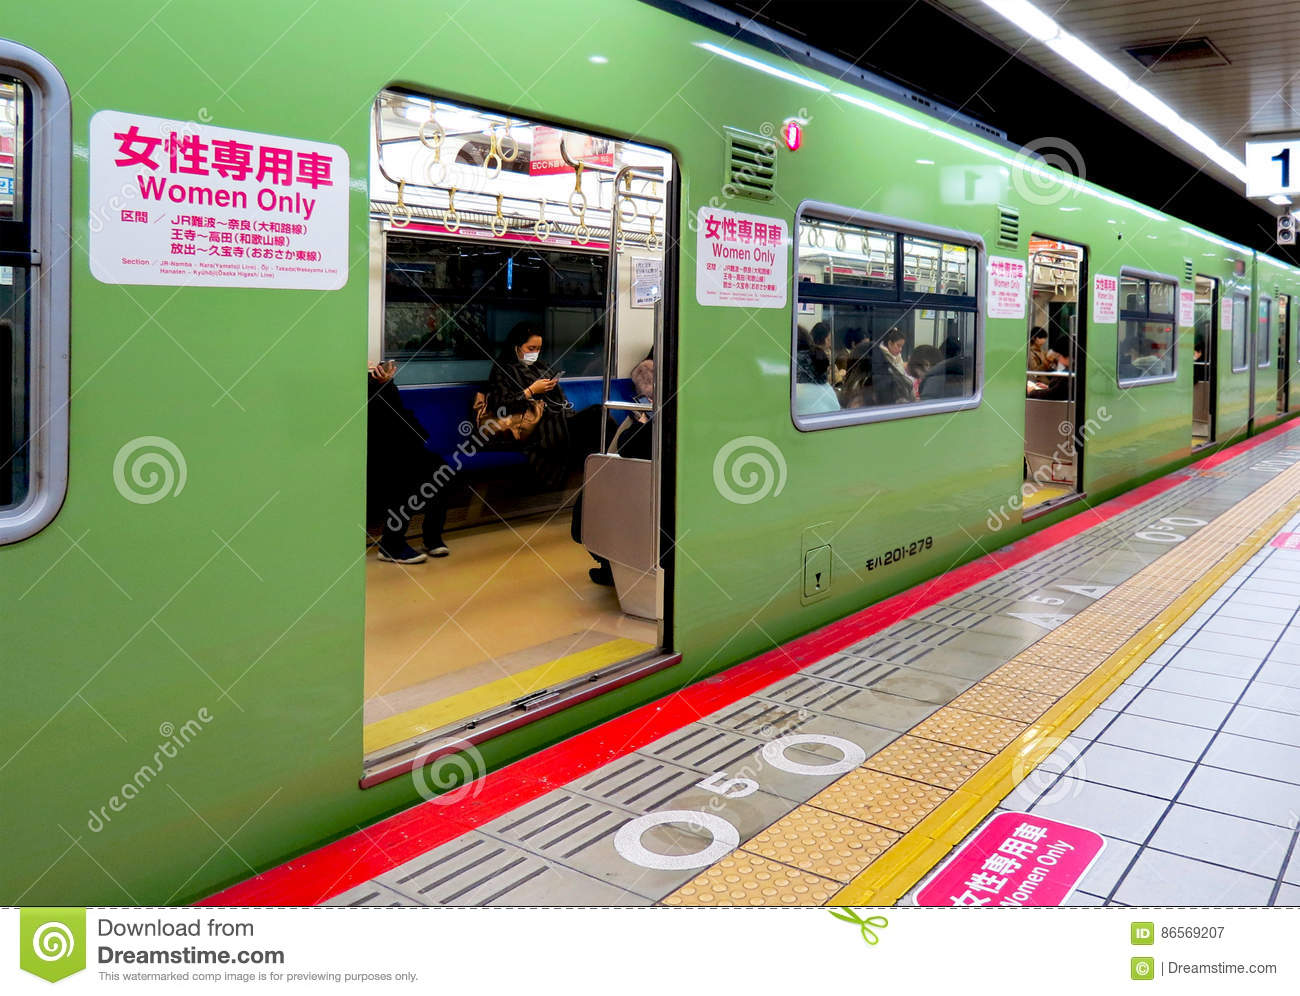 Forum on this topic: Having women's only train carriages is like , having-womens-only-train-carriages-is-like/